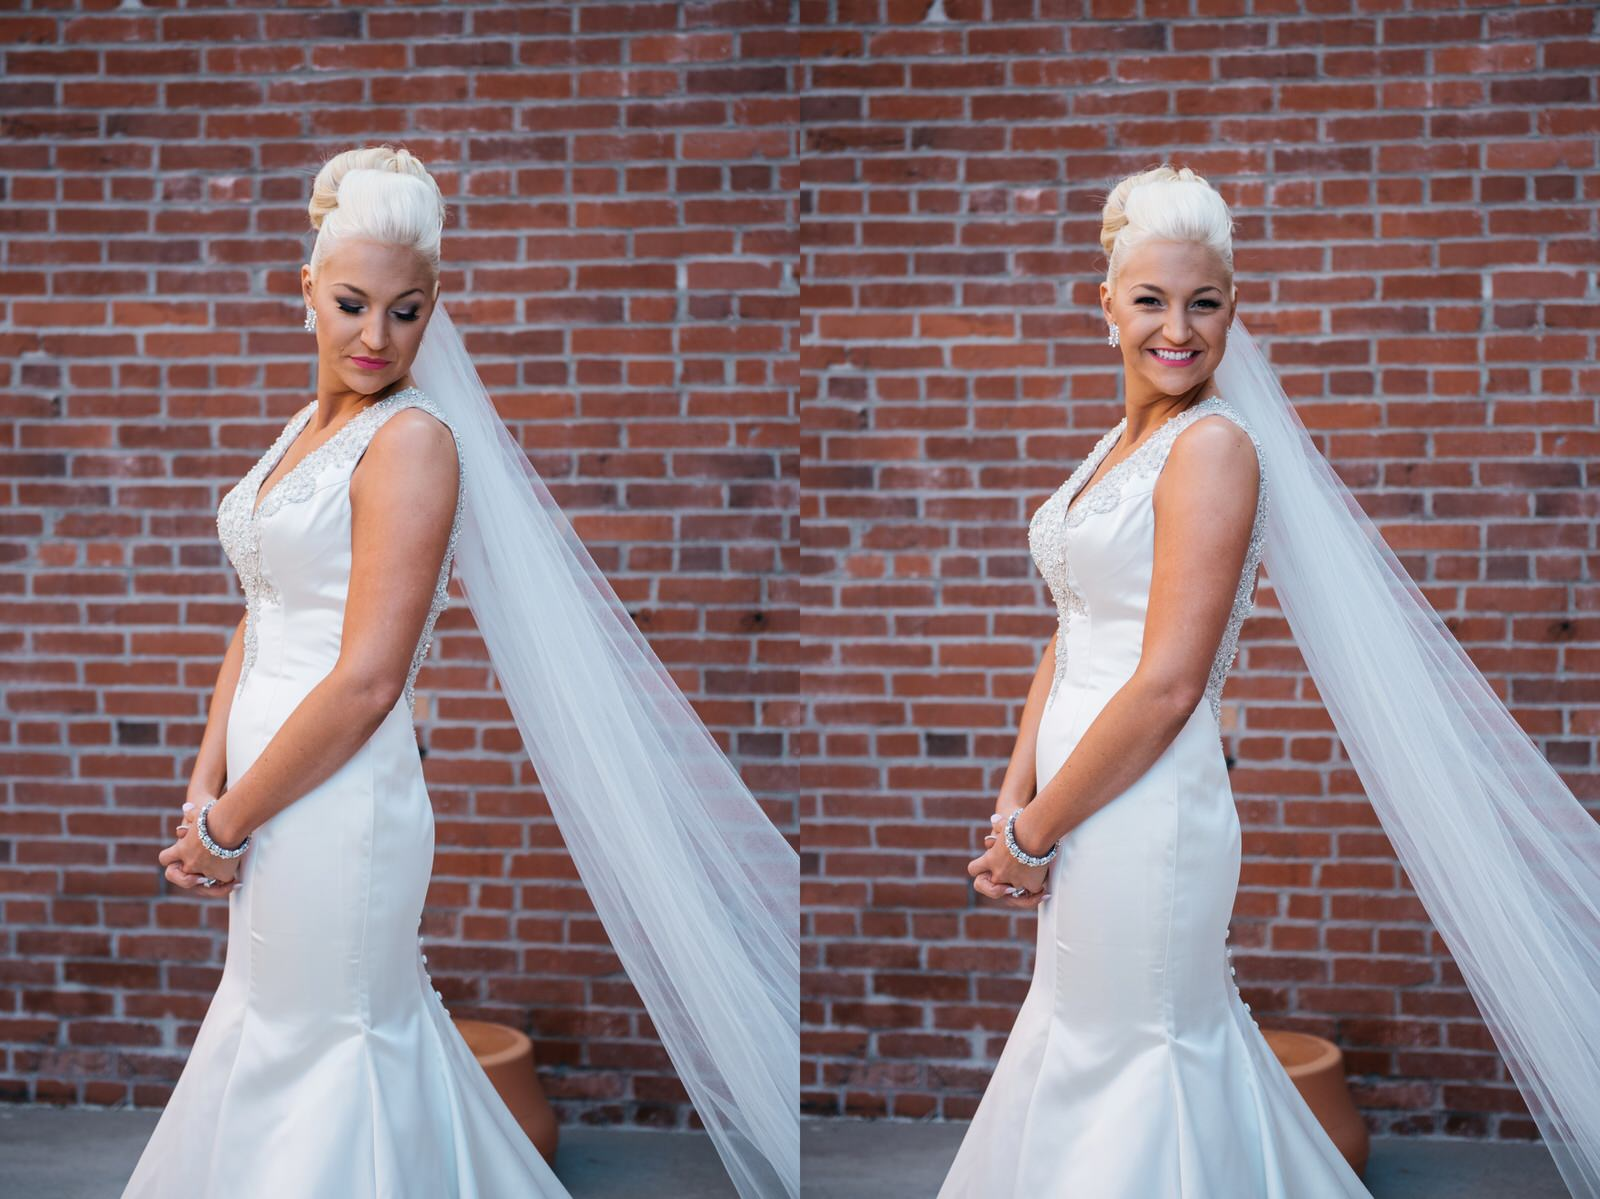 hilton_garden_inn_southpointe_pittsburgh_weddings_2.jpg